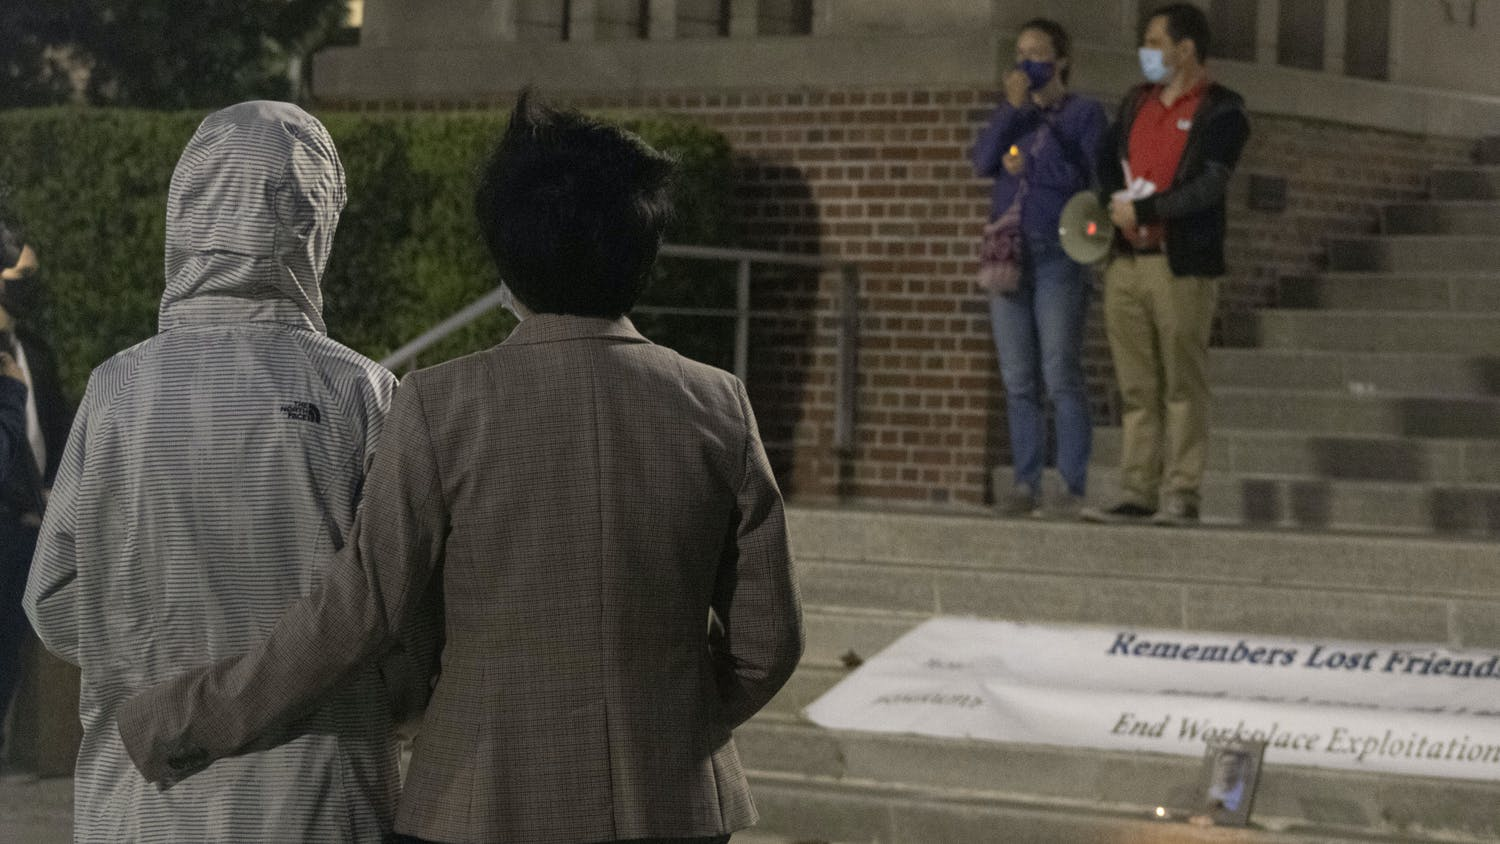 Two attendees stand in front of Tigert Hall at UF during a vigil on Thursday, April 1 honoring the life of international graduate student Huixiang Chen, who died by suicide in 2019. UF's Graduate Assistants United organized the event to express frustrations over abusive graduate student-mentor relationships.